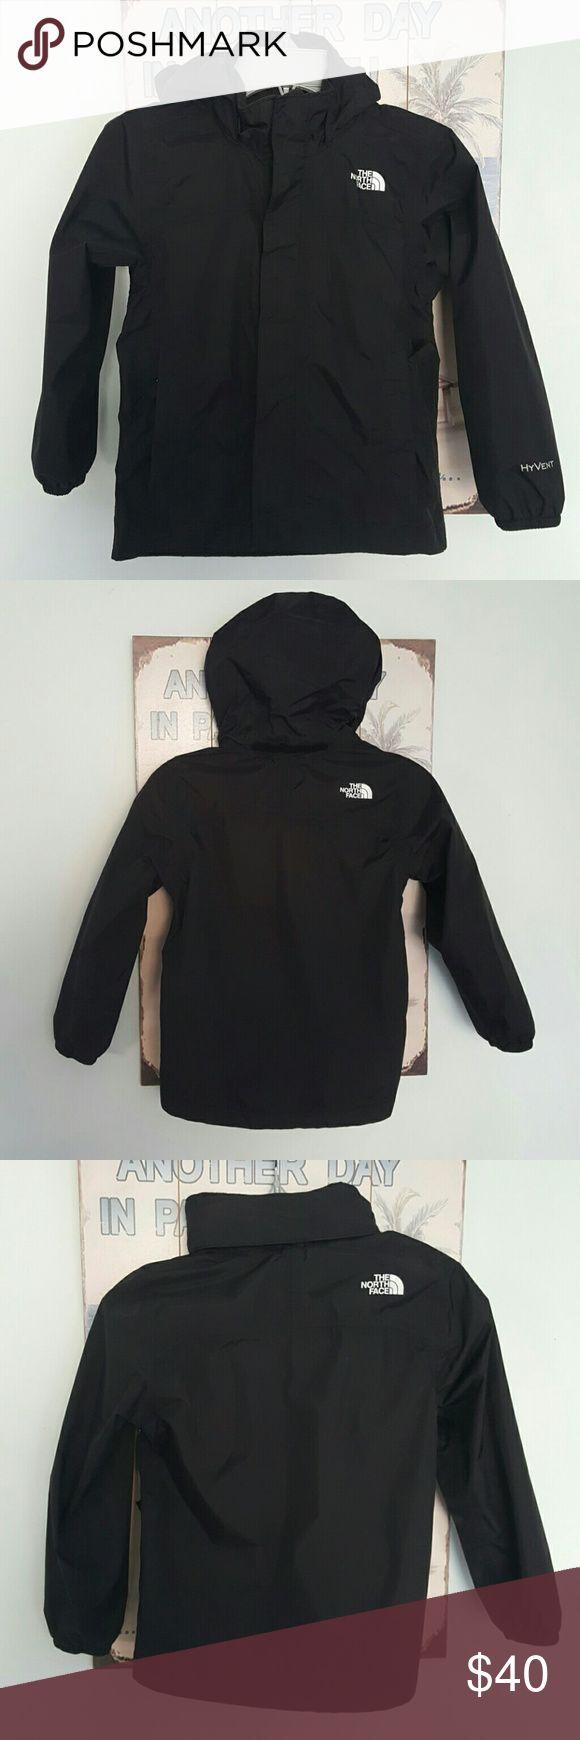 The North Face Windbreaker Rain Jacket Size XXS 5 EUC. Neutral colors that are good for a boy or girl. Worn for 1 season. Hood folds up and is hidden when not in use. The North Face Jackets & Coats